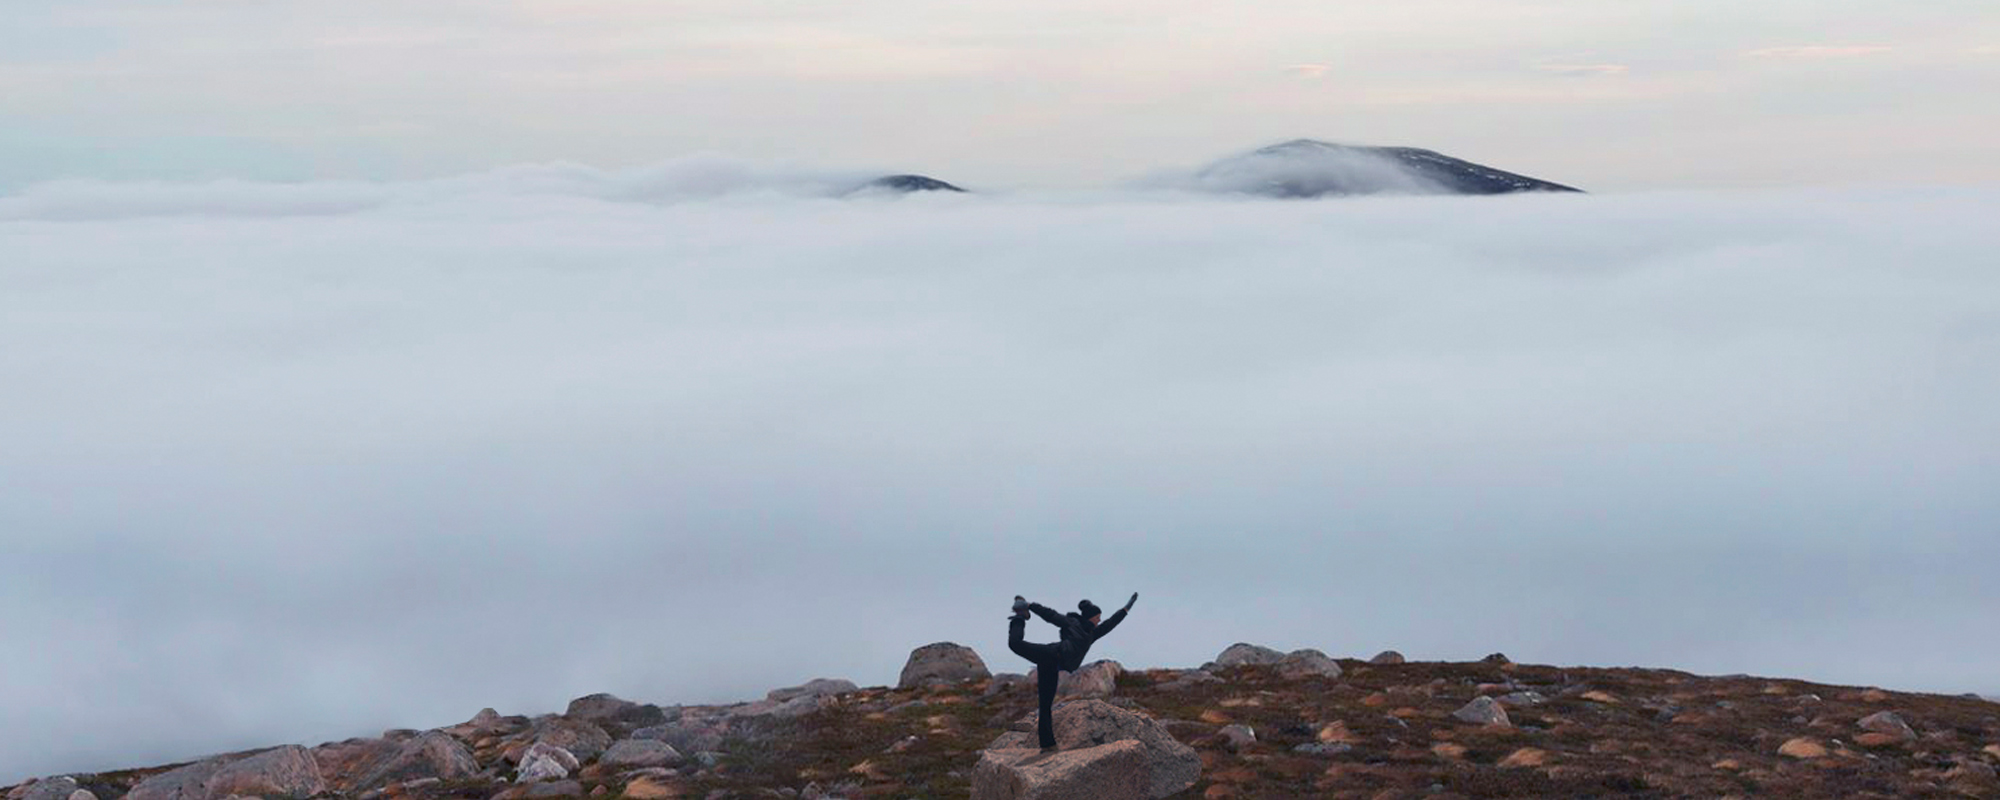 Trekker does a yoga pose on a mountain summit in the Cairngorms